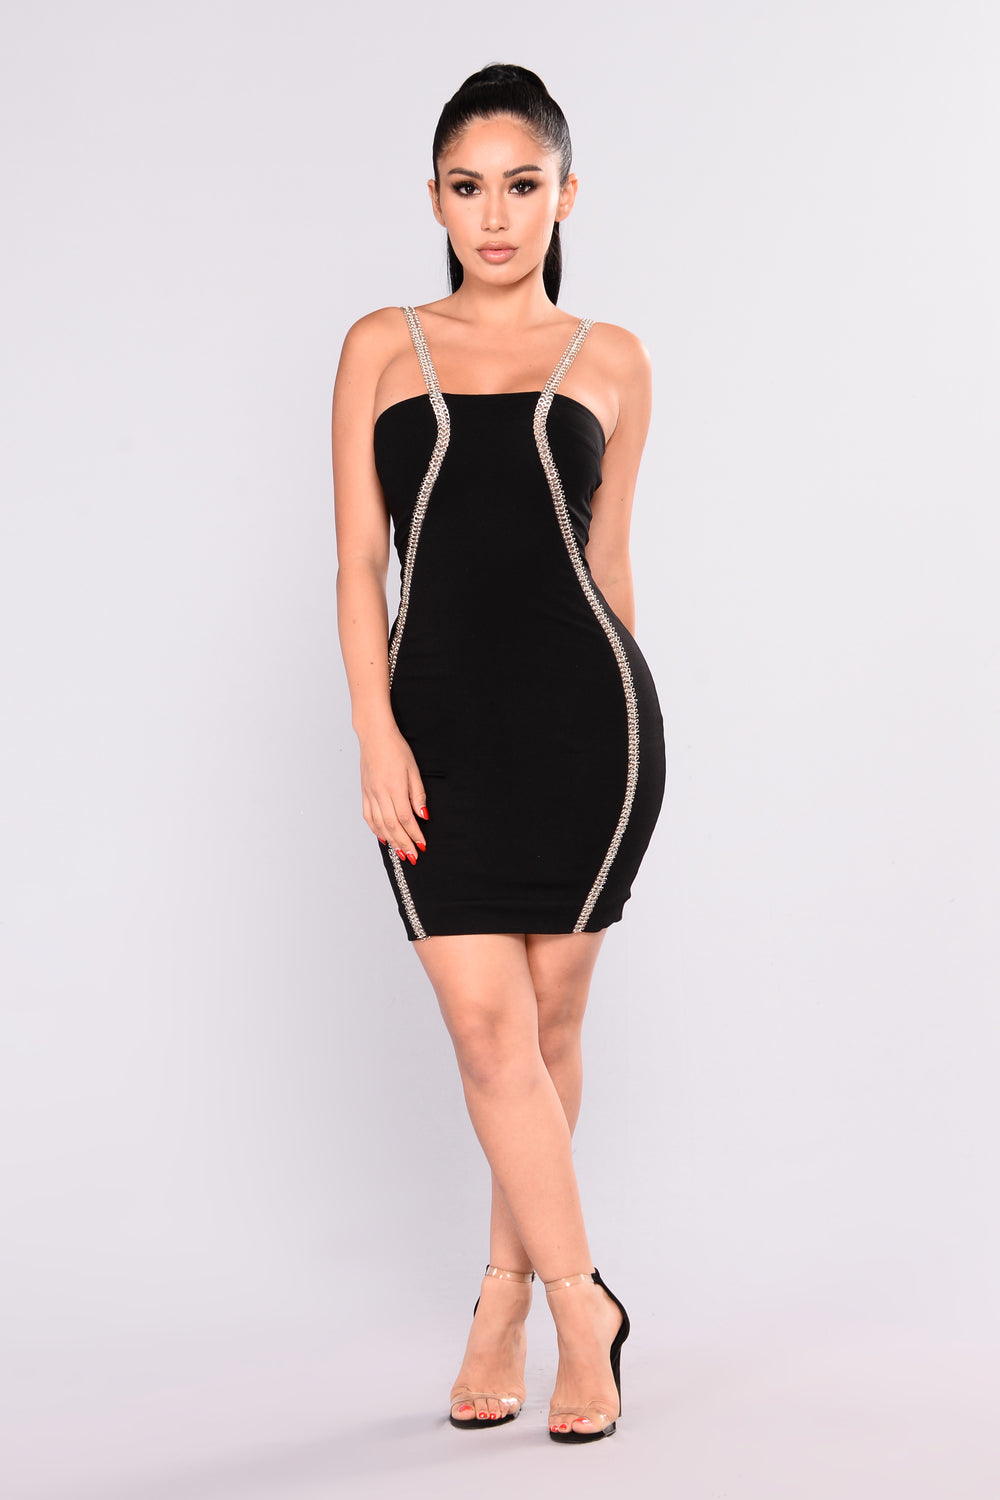 Part Of The Plan Chain Dress - Black